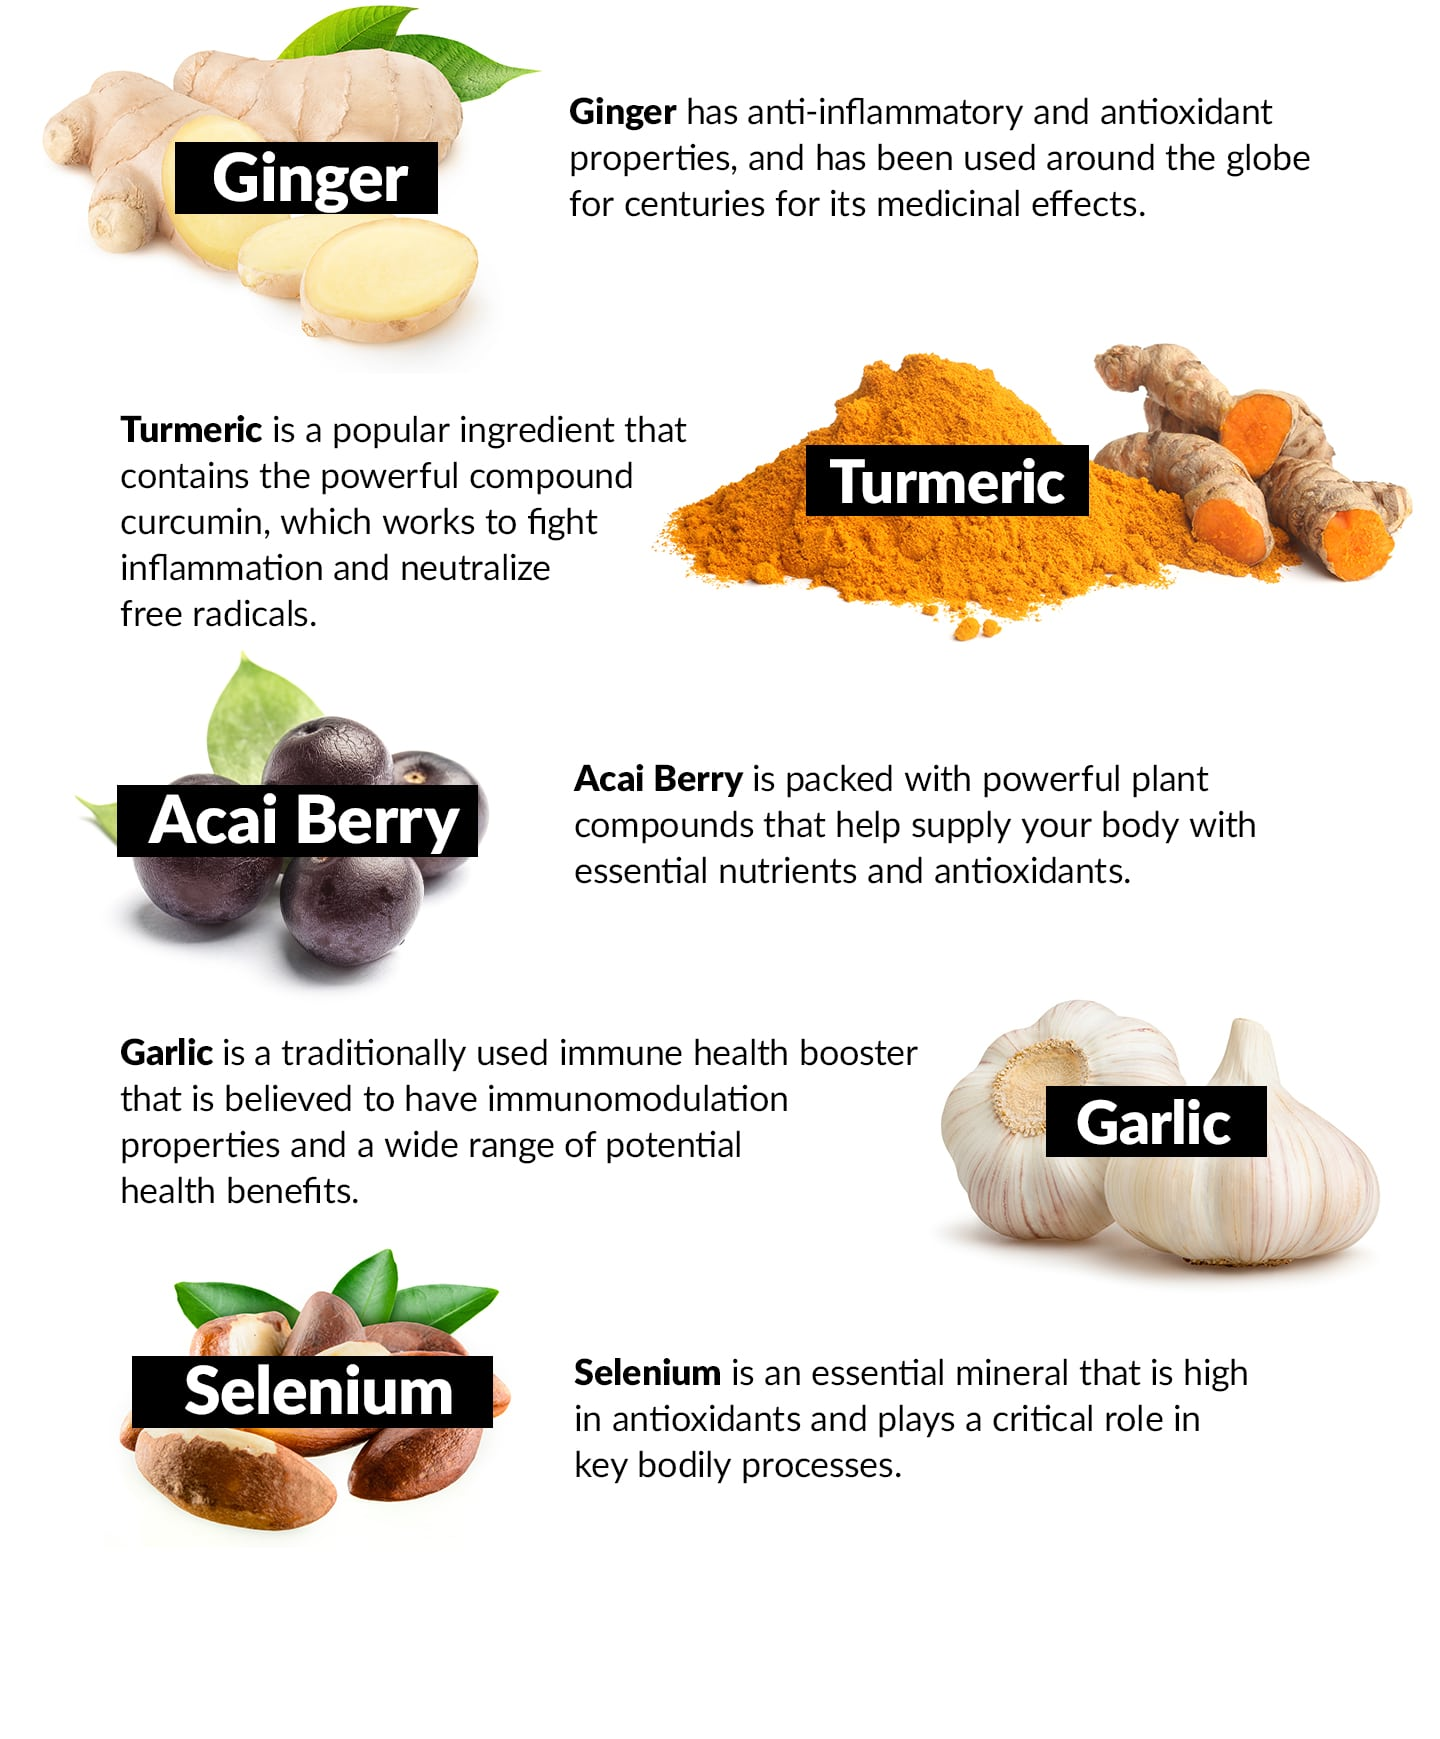 Ginger has anti-inflammatory and antioxidant properties, and has been used around the globe for centuries for its medicinal effects. Turmeric is a popular ingredient that contains the powerful compound curcumin, which works to fight inflammation and neutralize free radicals. Acai Berry is packed with powerful plant compounds that help supply your body with essential nutrients and antioxidants. Garlic is a traditionally used immune health booster that is believed to have immunomodulation properties and a wide range of potential health benefits. Selenium is an essential mineral that is high in antioxidants and plays a critical role in key bodily processes.